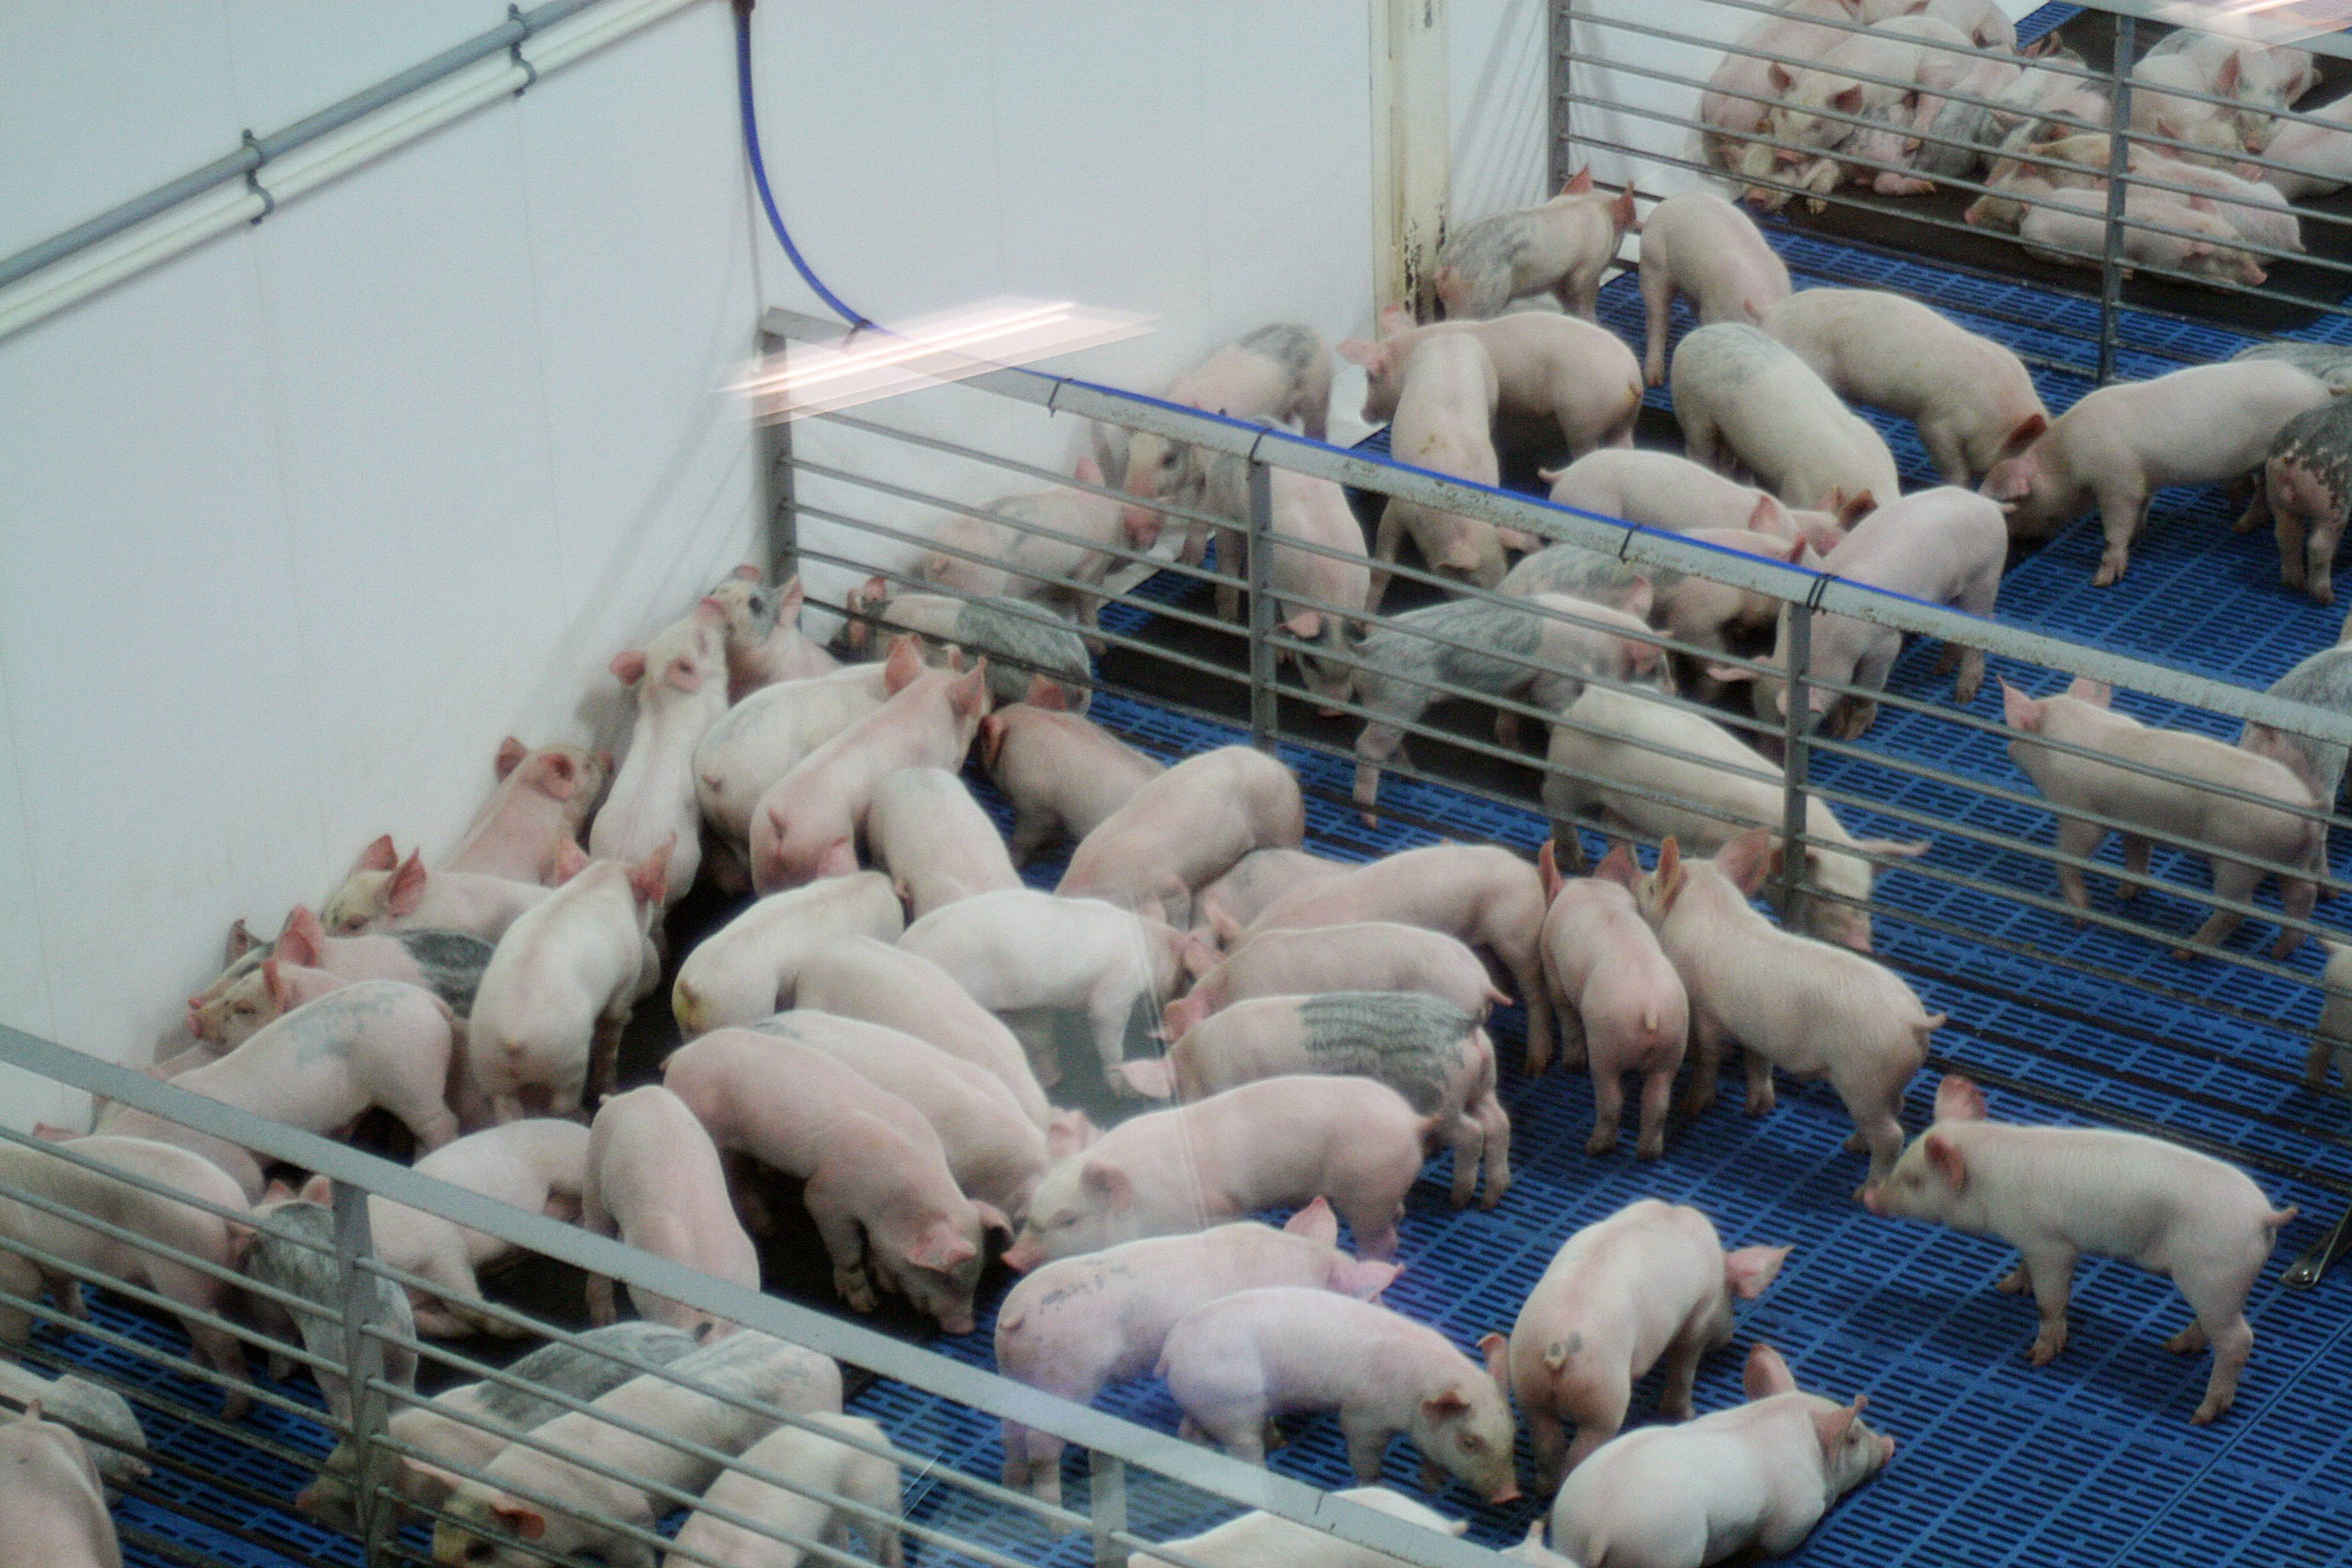 These piglets are almost ready for sale at Fair Oaks Farms in Fair Oaks, Ind. Tourists can visit the high-tech dairy farm and see piglets born on a hog farm all in one visit.